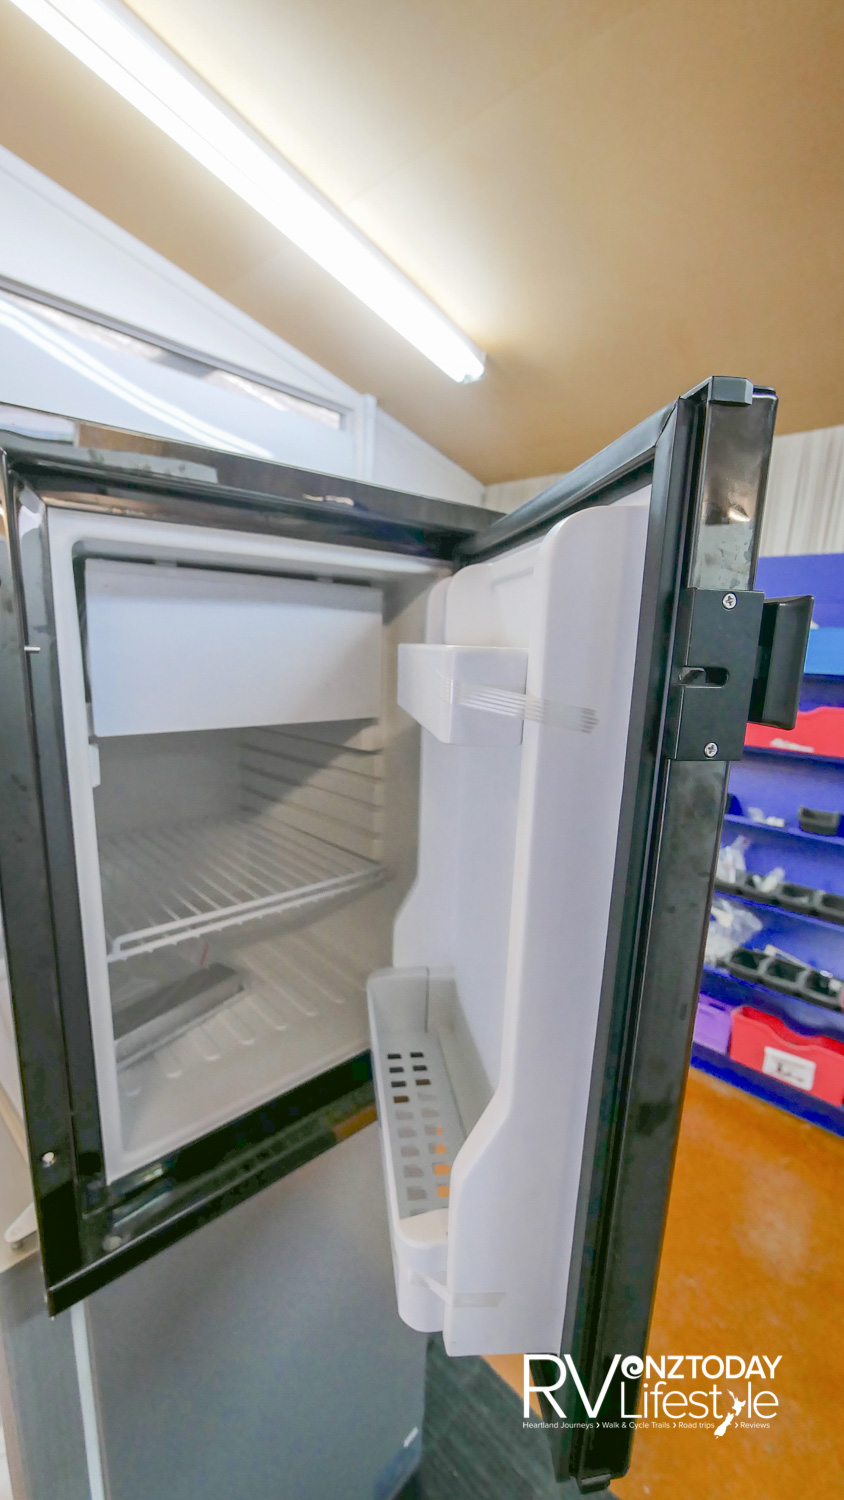 Perfect replacement fridge for some two-berth models out there, if you solar up